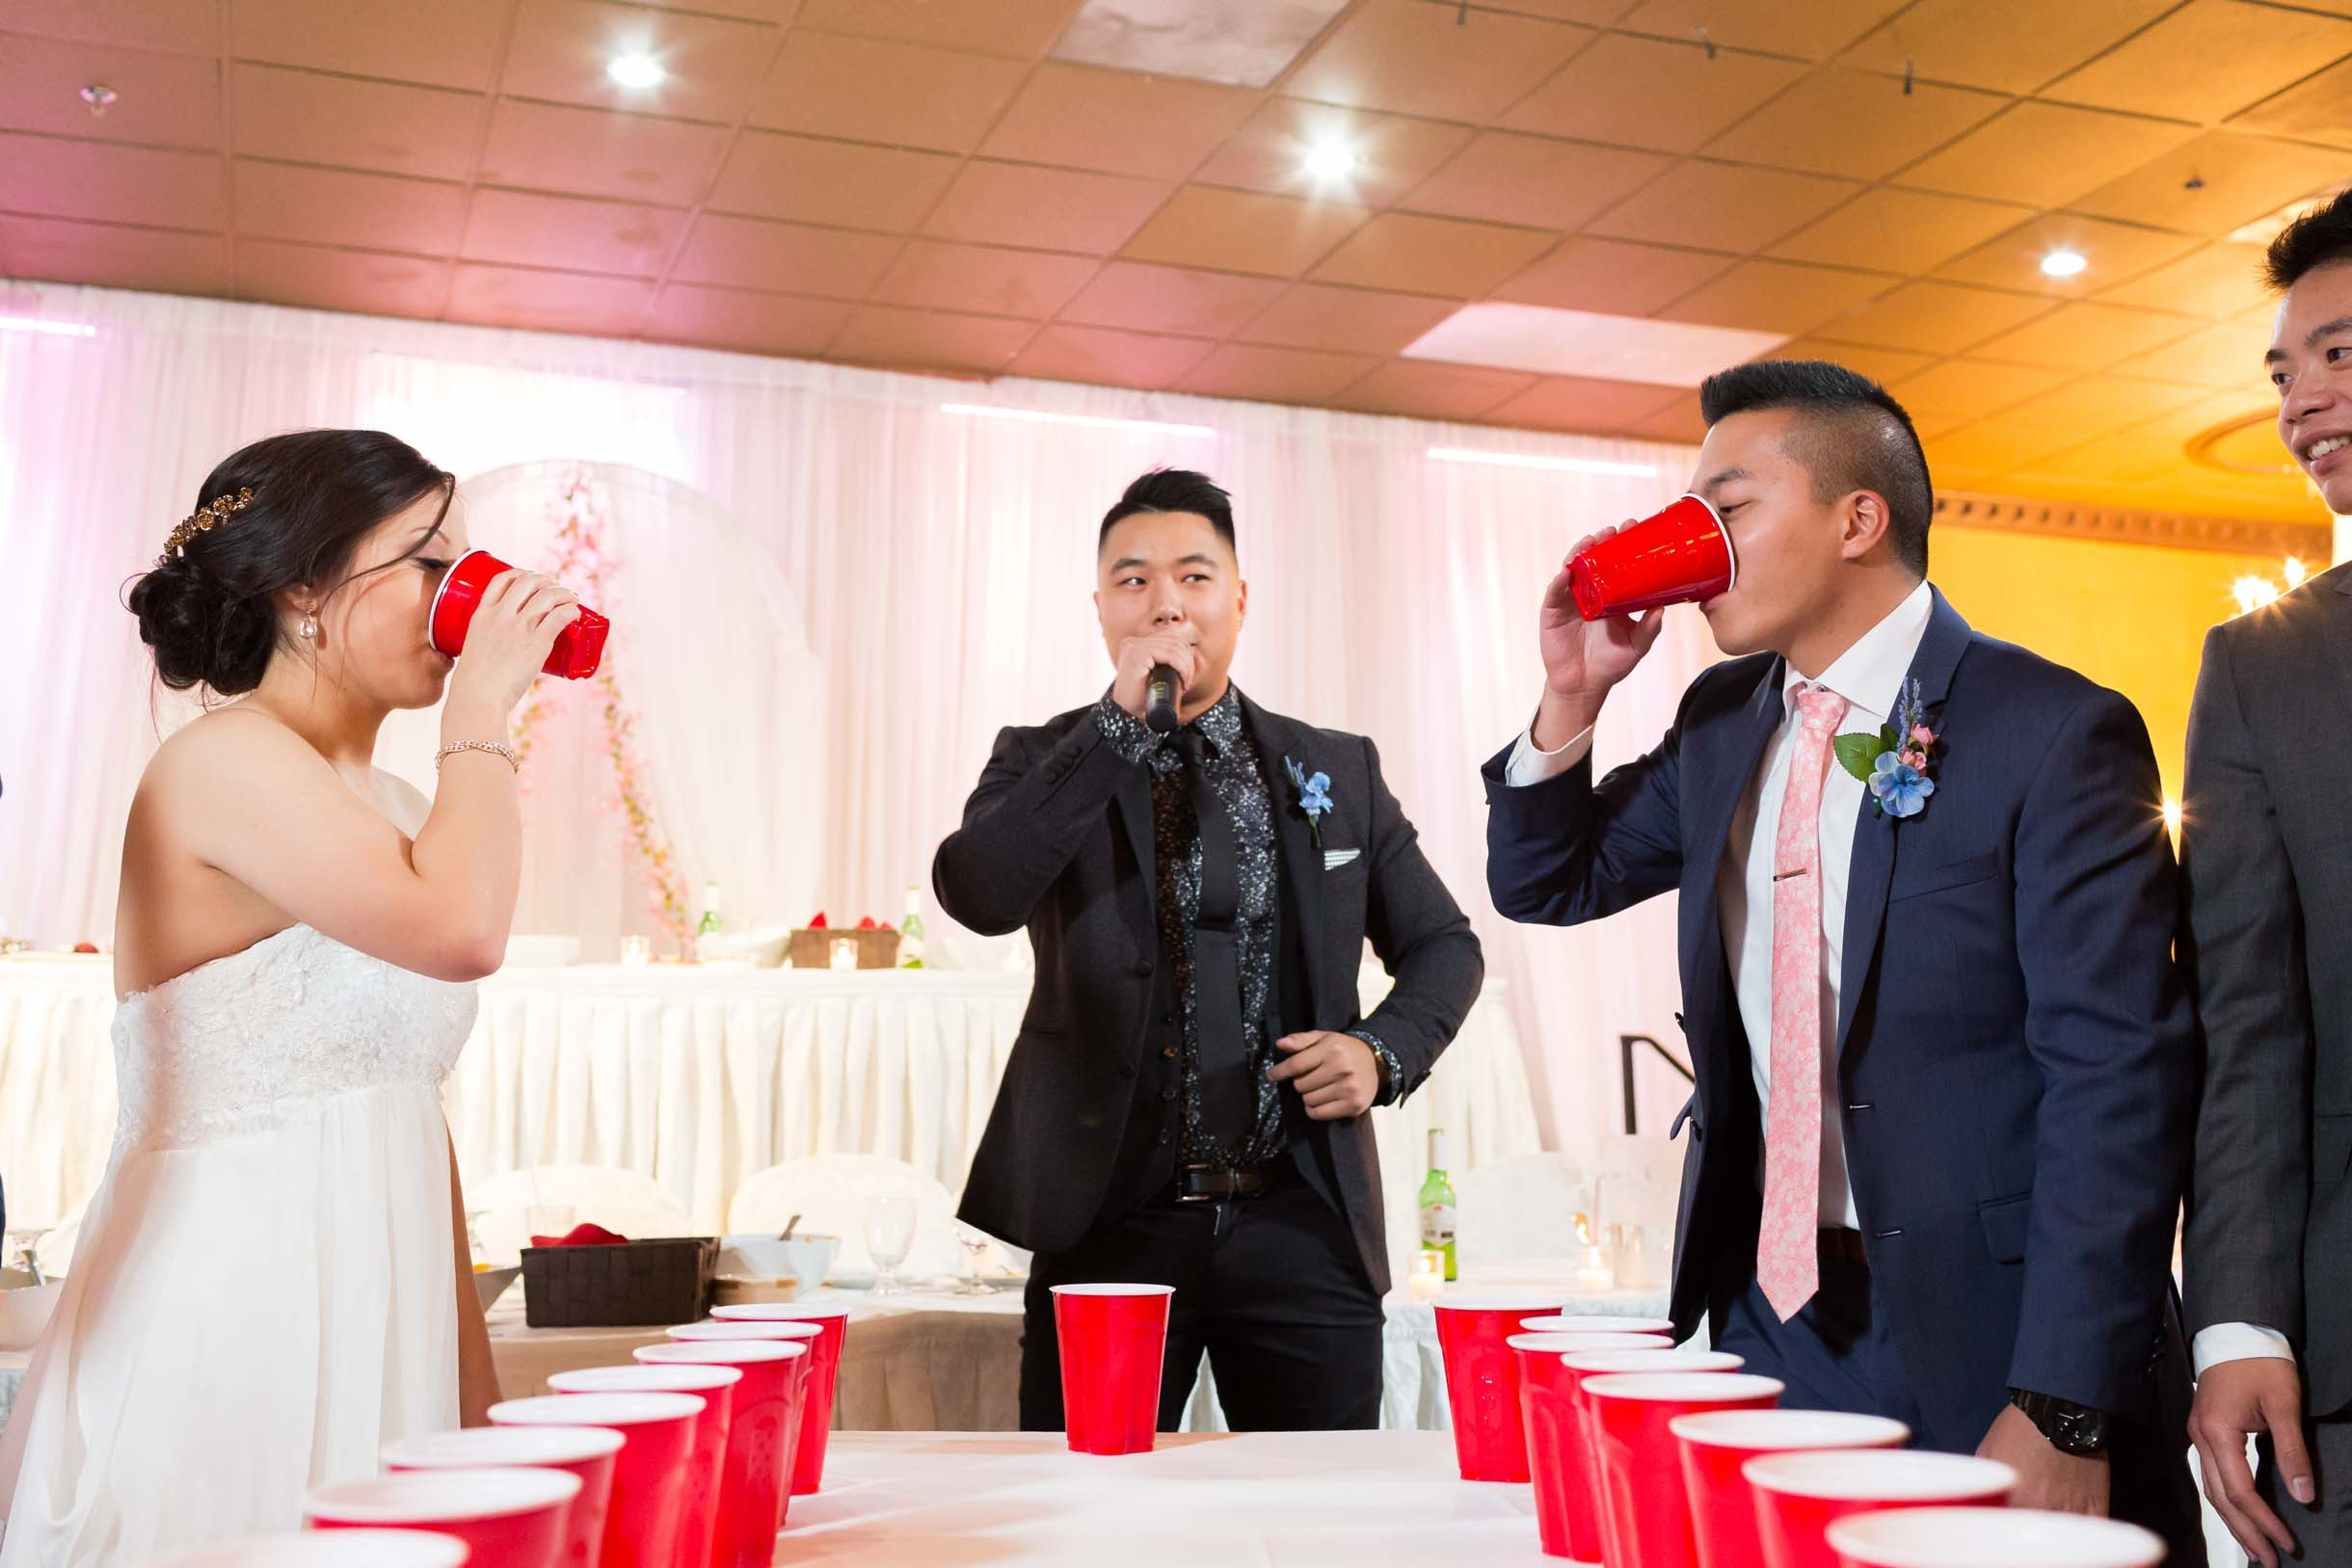 29 Wedding Game Ideas To Keep Your Guests Having Fun!